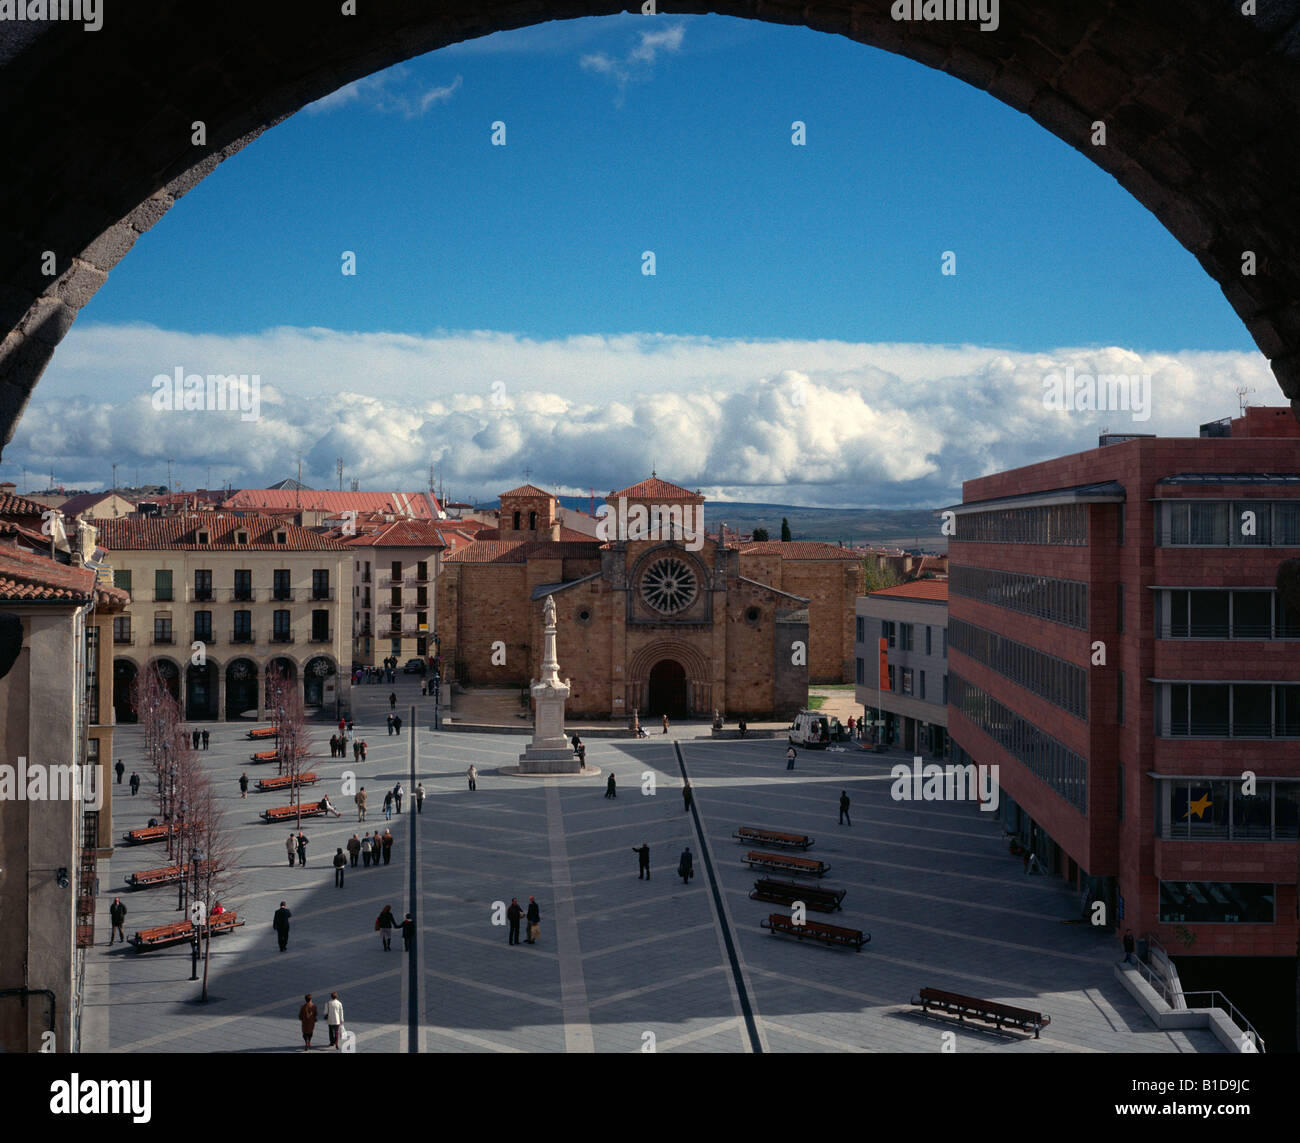 The main square, El Chico in Avila seen from the city walls, Spain - Stock Image